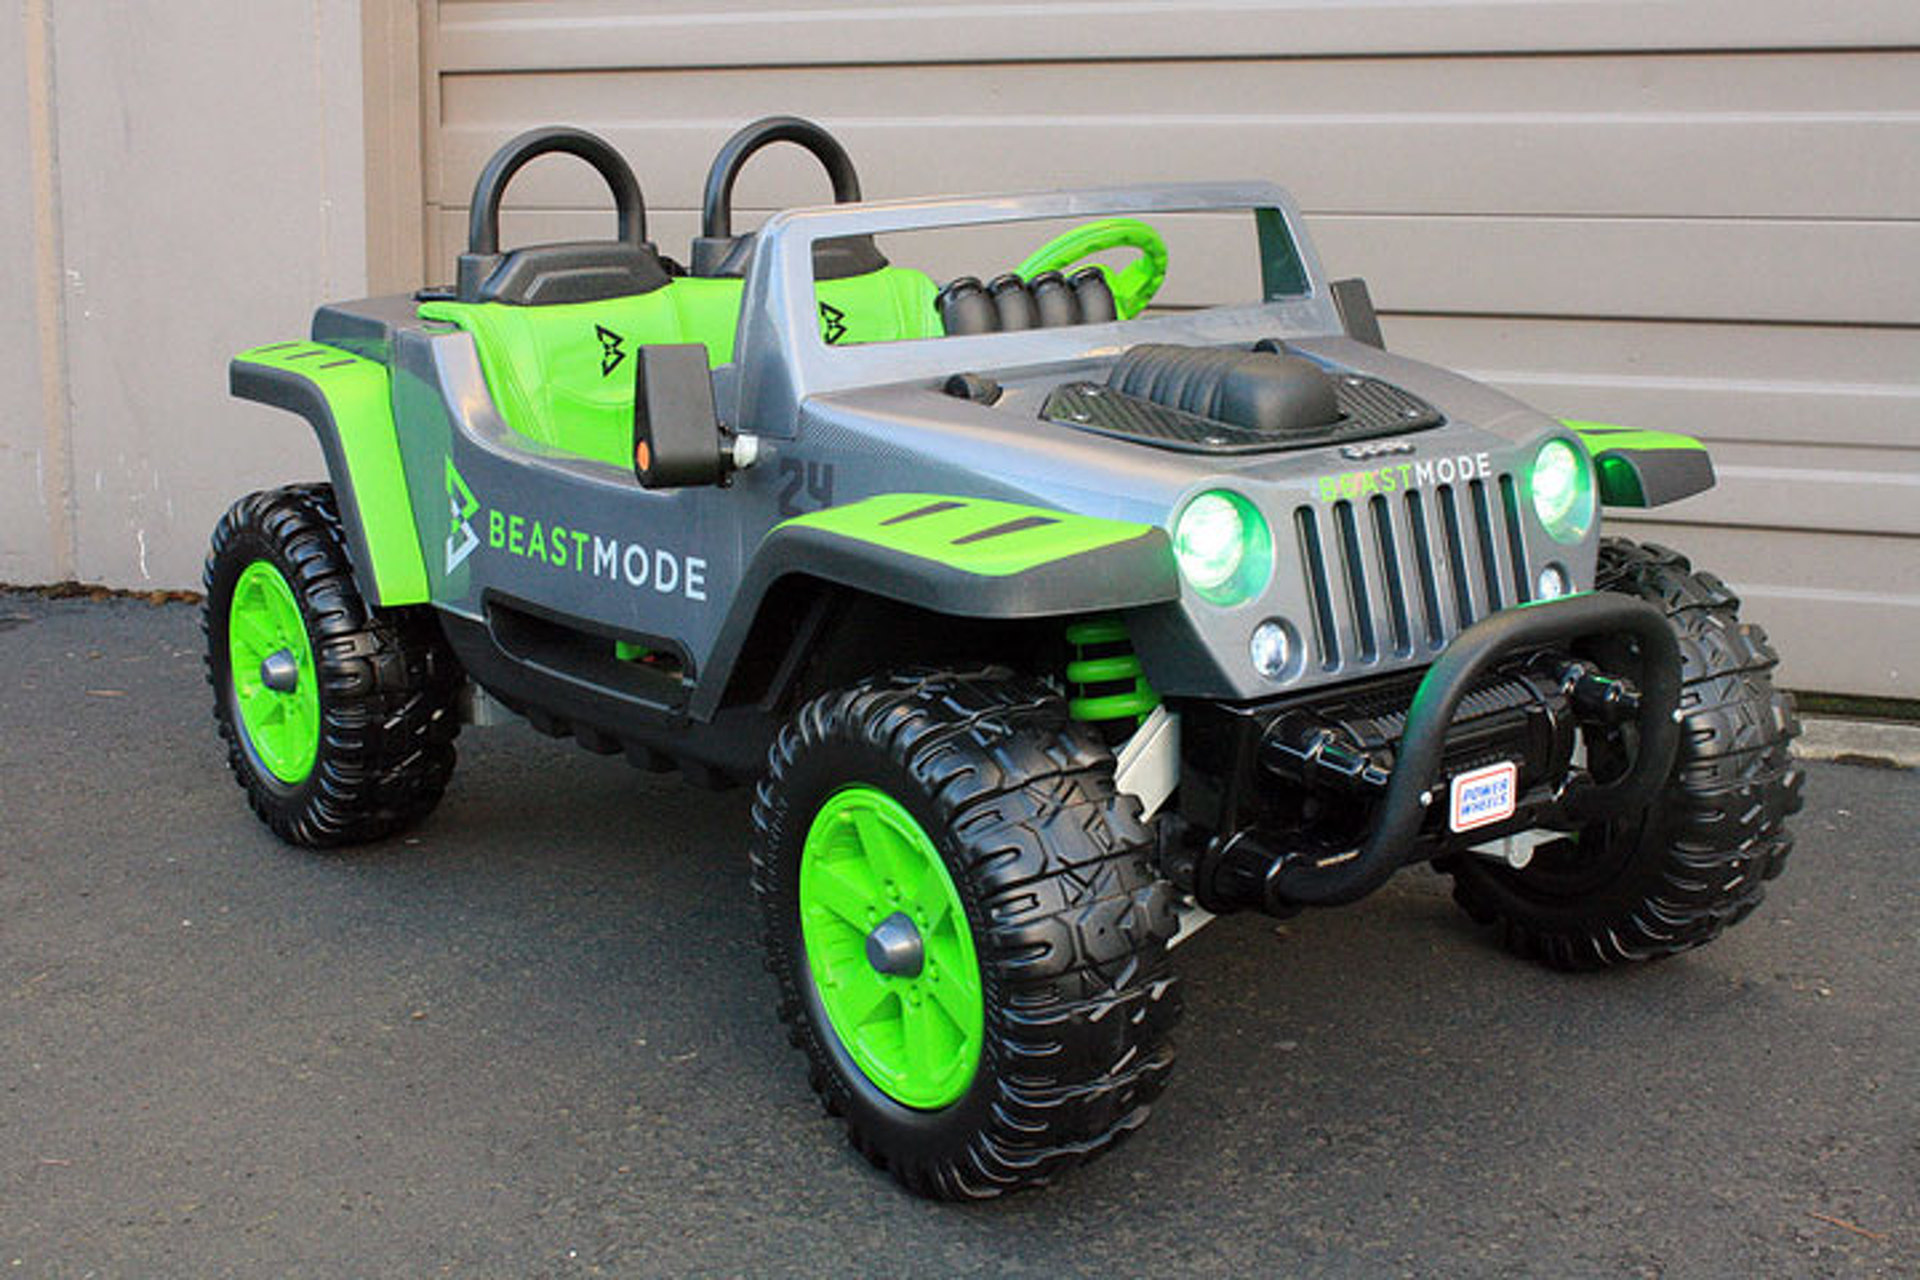 Marshawn Lynch is Selling Two Beast Mode Jeeps for Charity